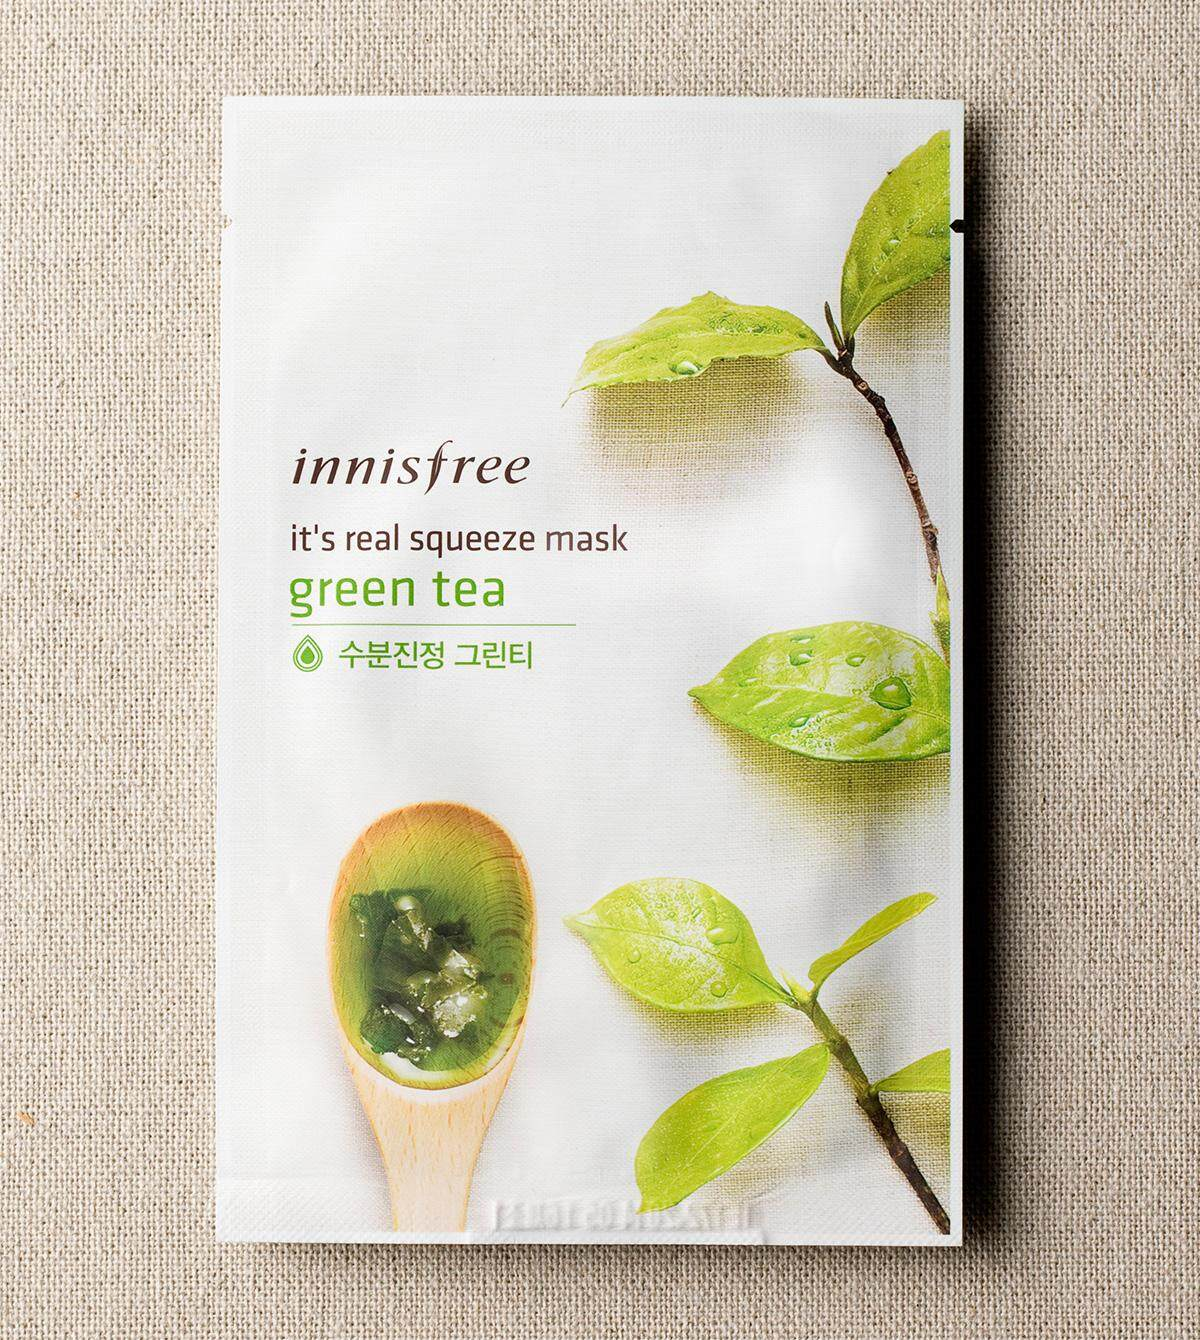 Features Seantree Aloe Mask Sheet 10pcs Dan Harga Terbaru Info Nature Republic Greentea Bundling 3pcs Beauty Product Innisfree Its Real Squeeze